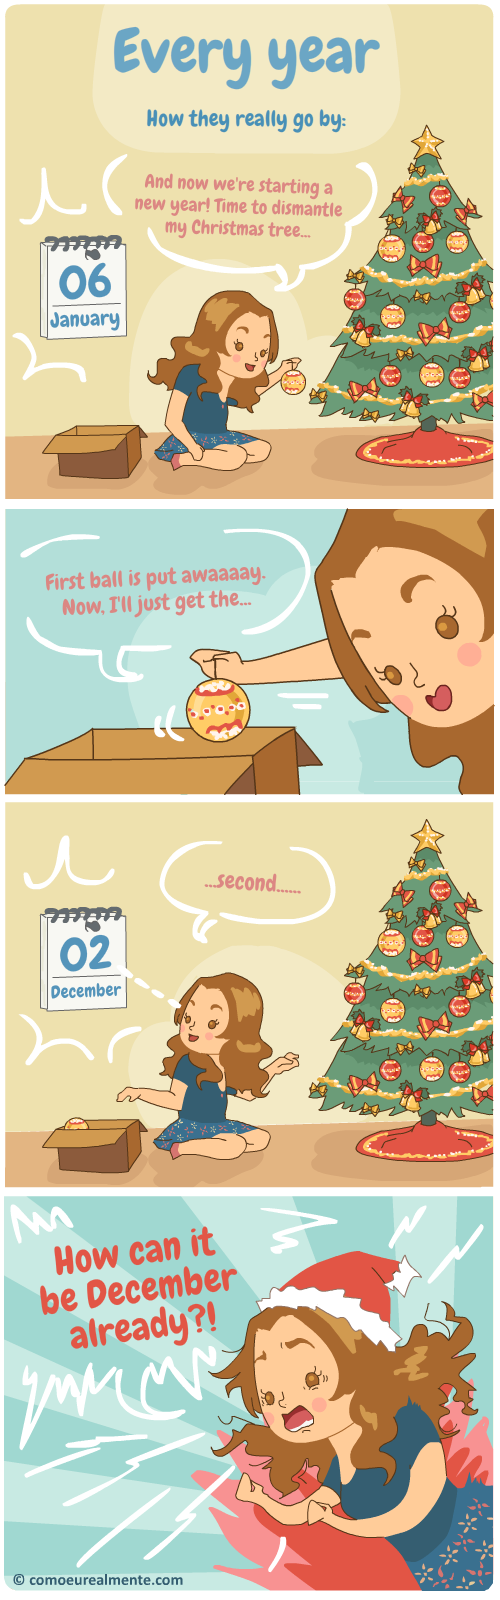 How every year really goes by - really fast!